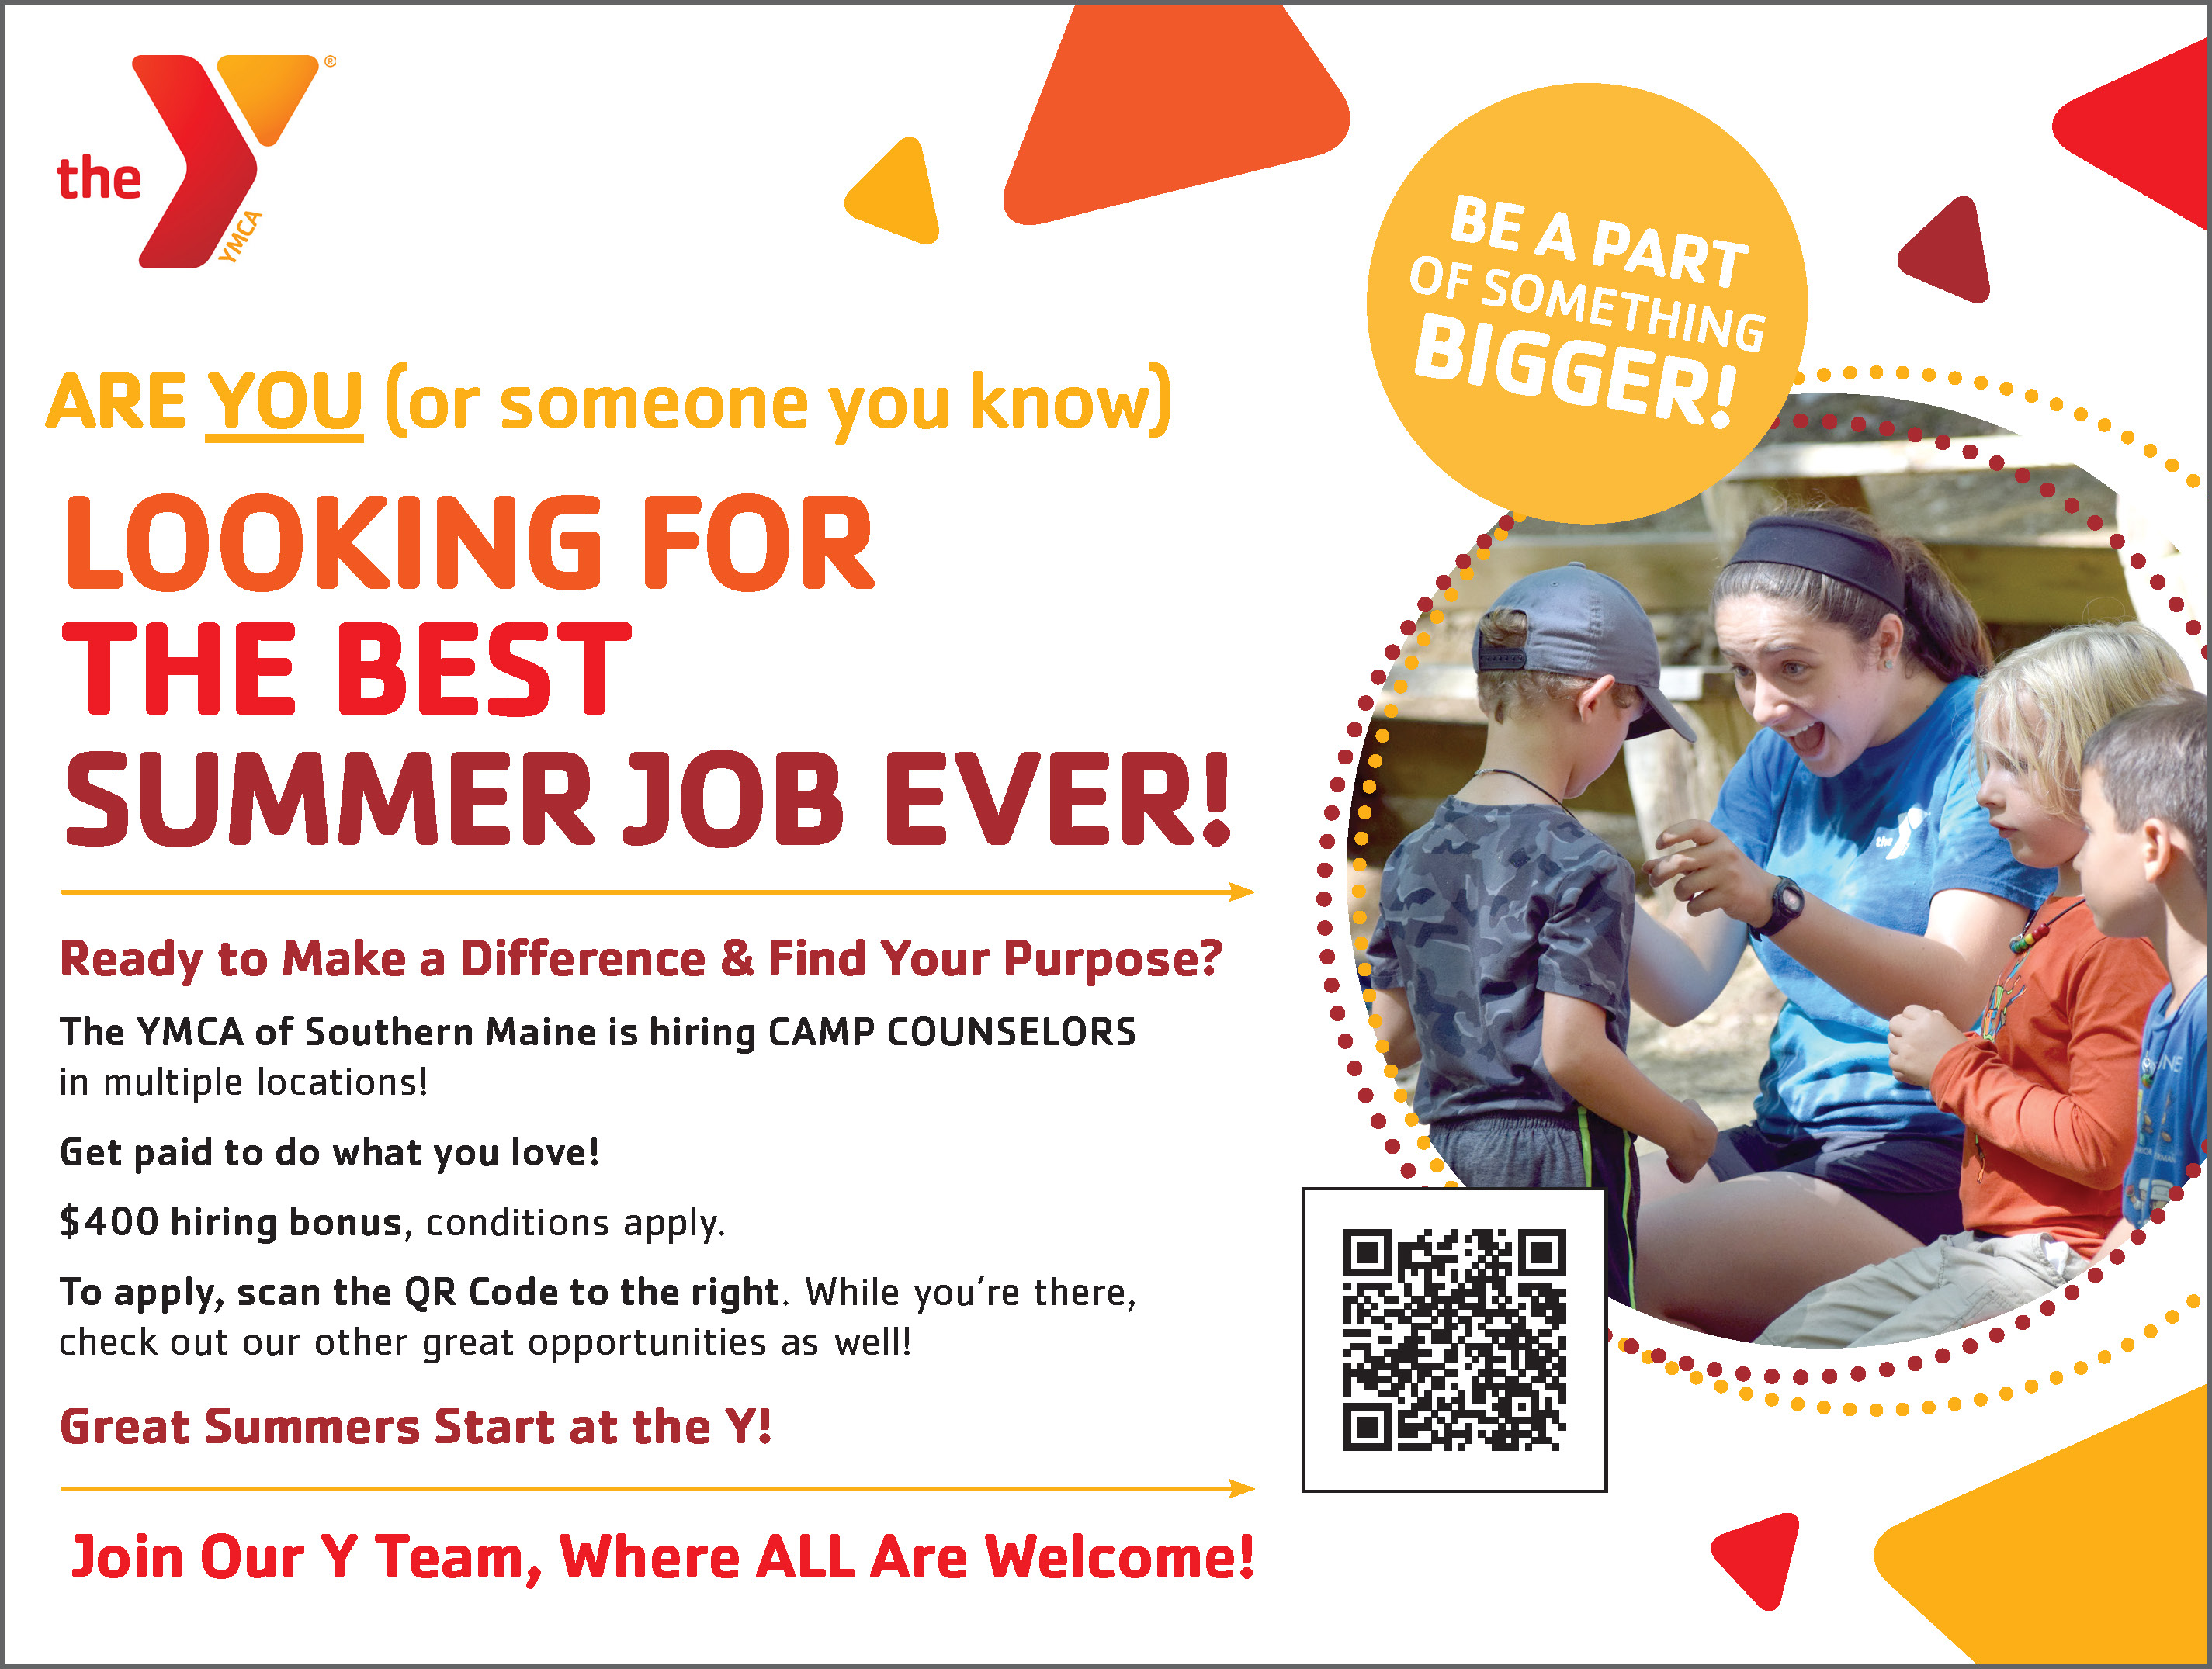 http://www.ymcaofsouthernmaine.org/camp